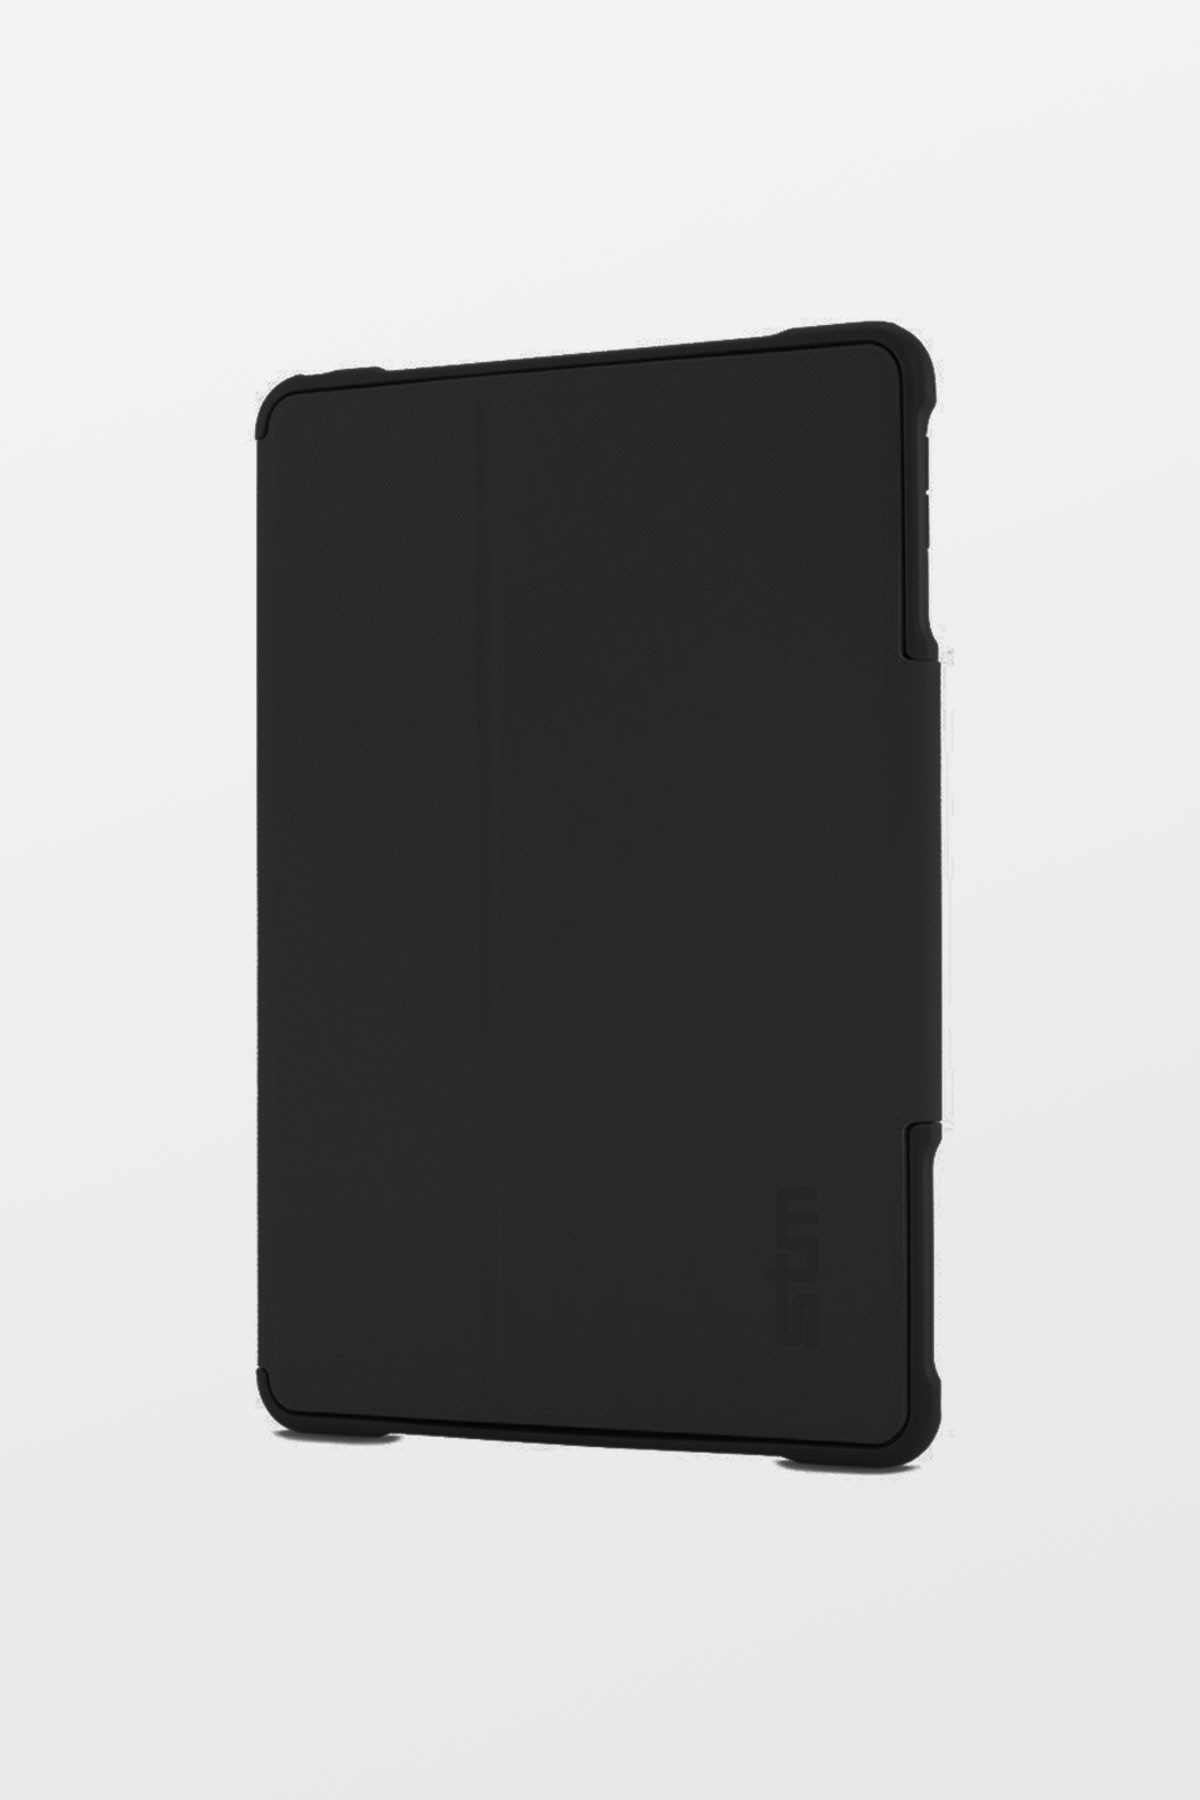 STM Dux for iPad Air - Black